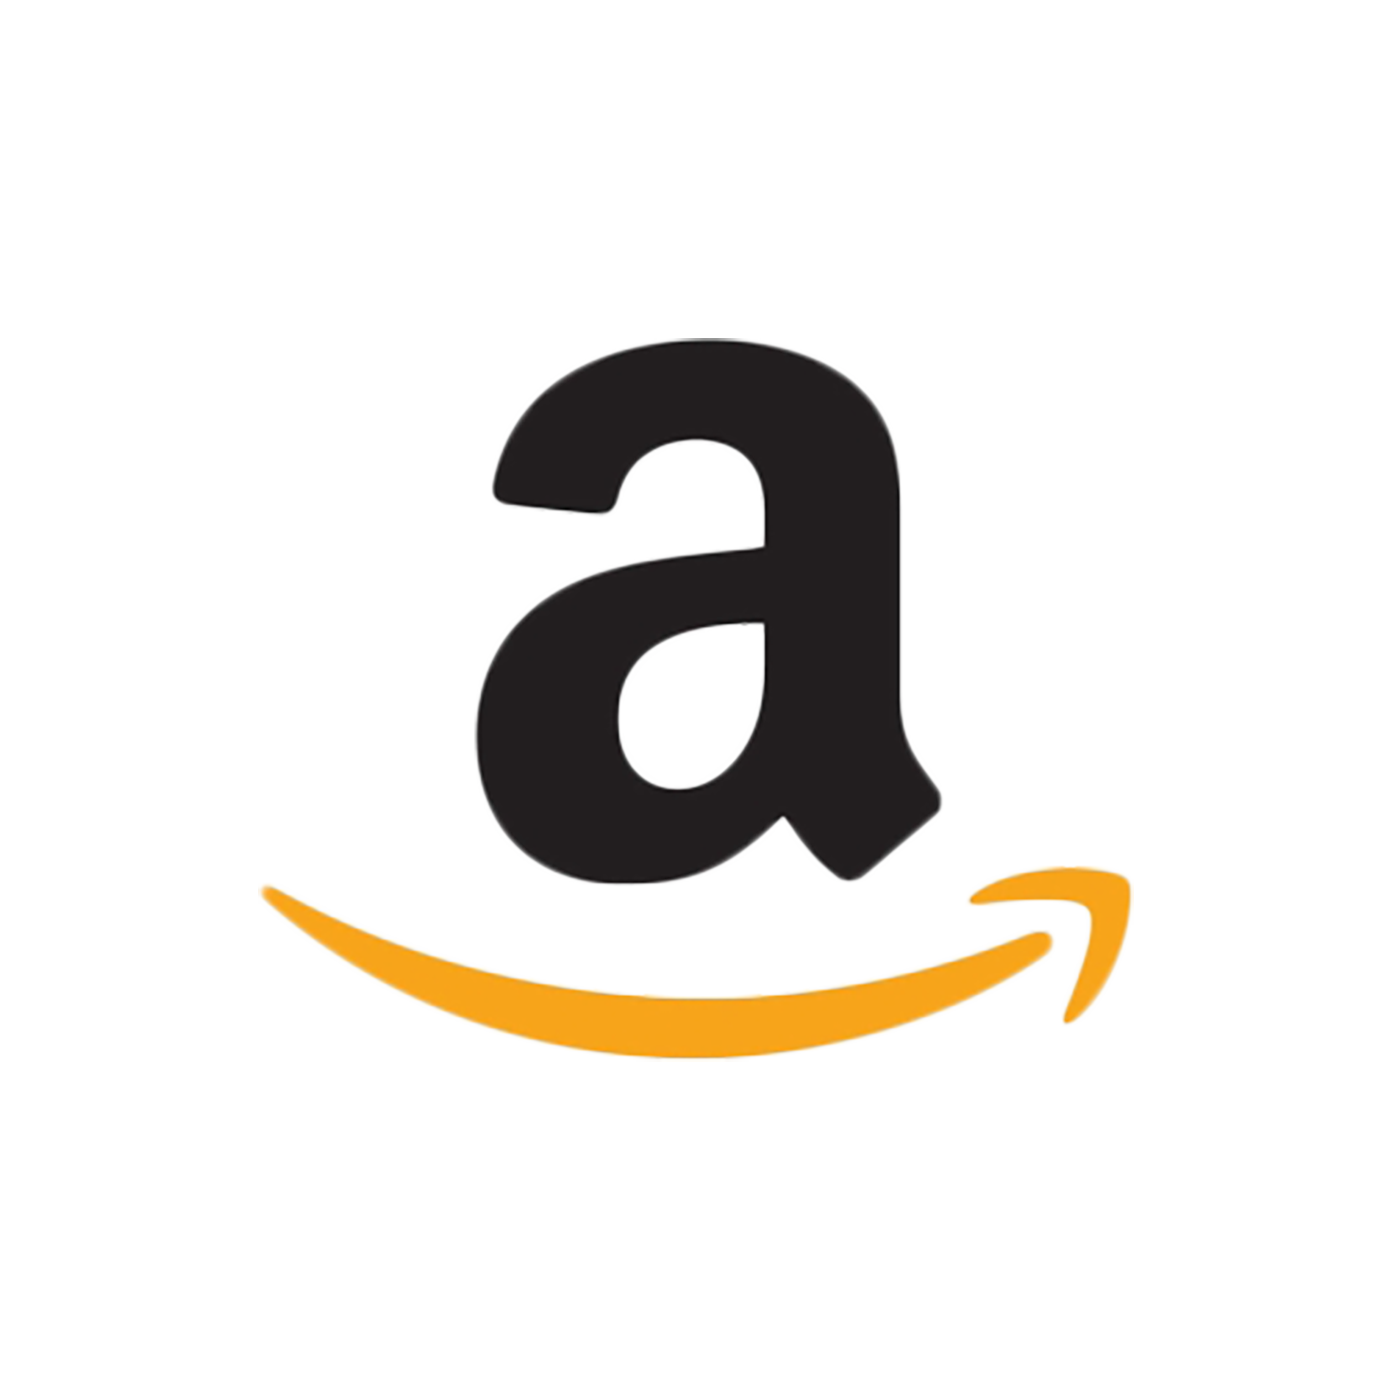 amazon_no_background.png